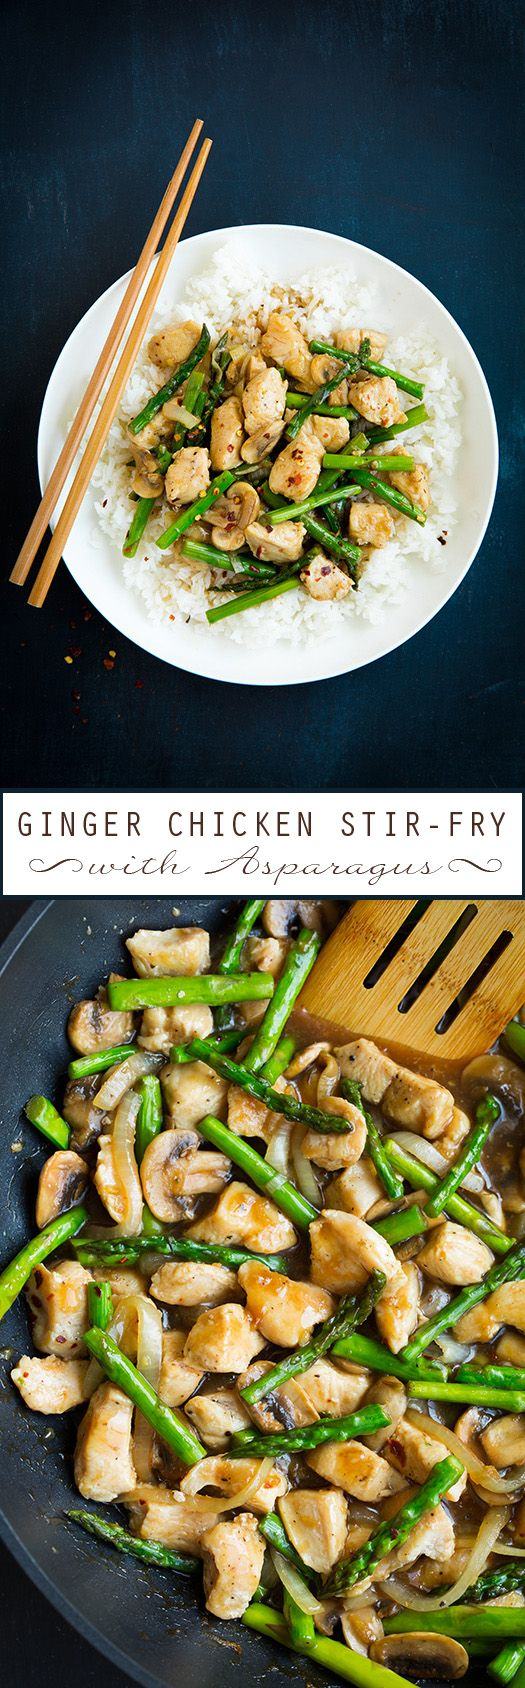 Ginger Chicken Stir-Fry with Asparagus - from @Jaclyn Booton Booton Bell {Cooking Classy}